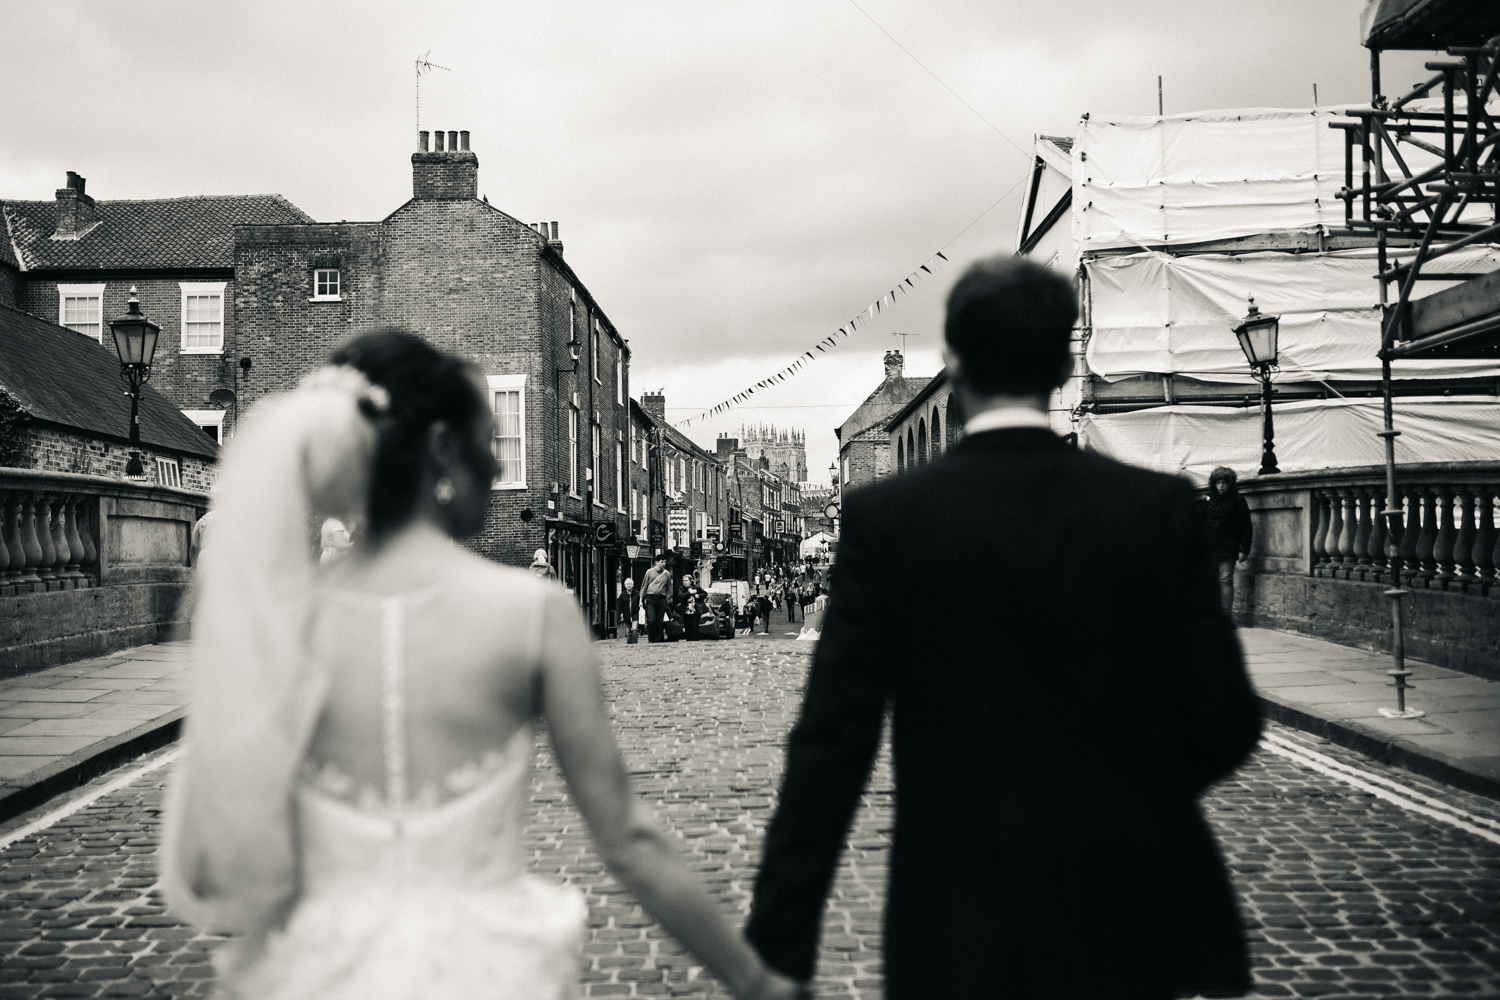 creative-relaxed-wedding-photography-stop-motion-films-teesside-north-east-yorkshire-0020.jpg